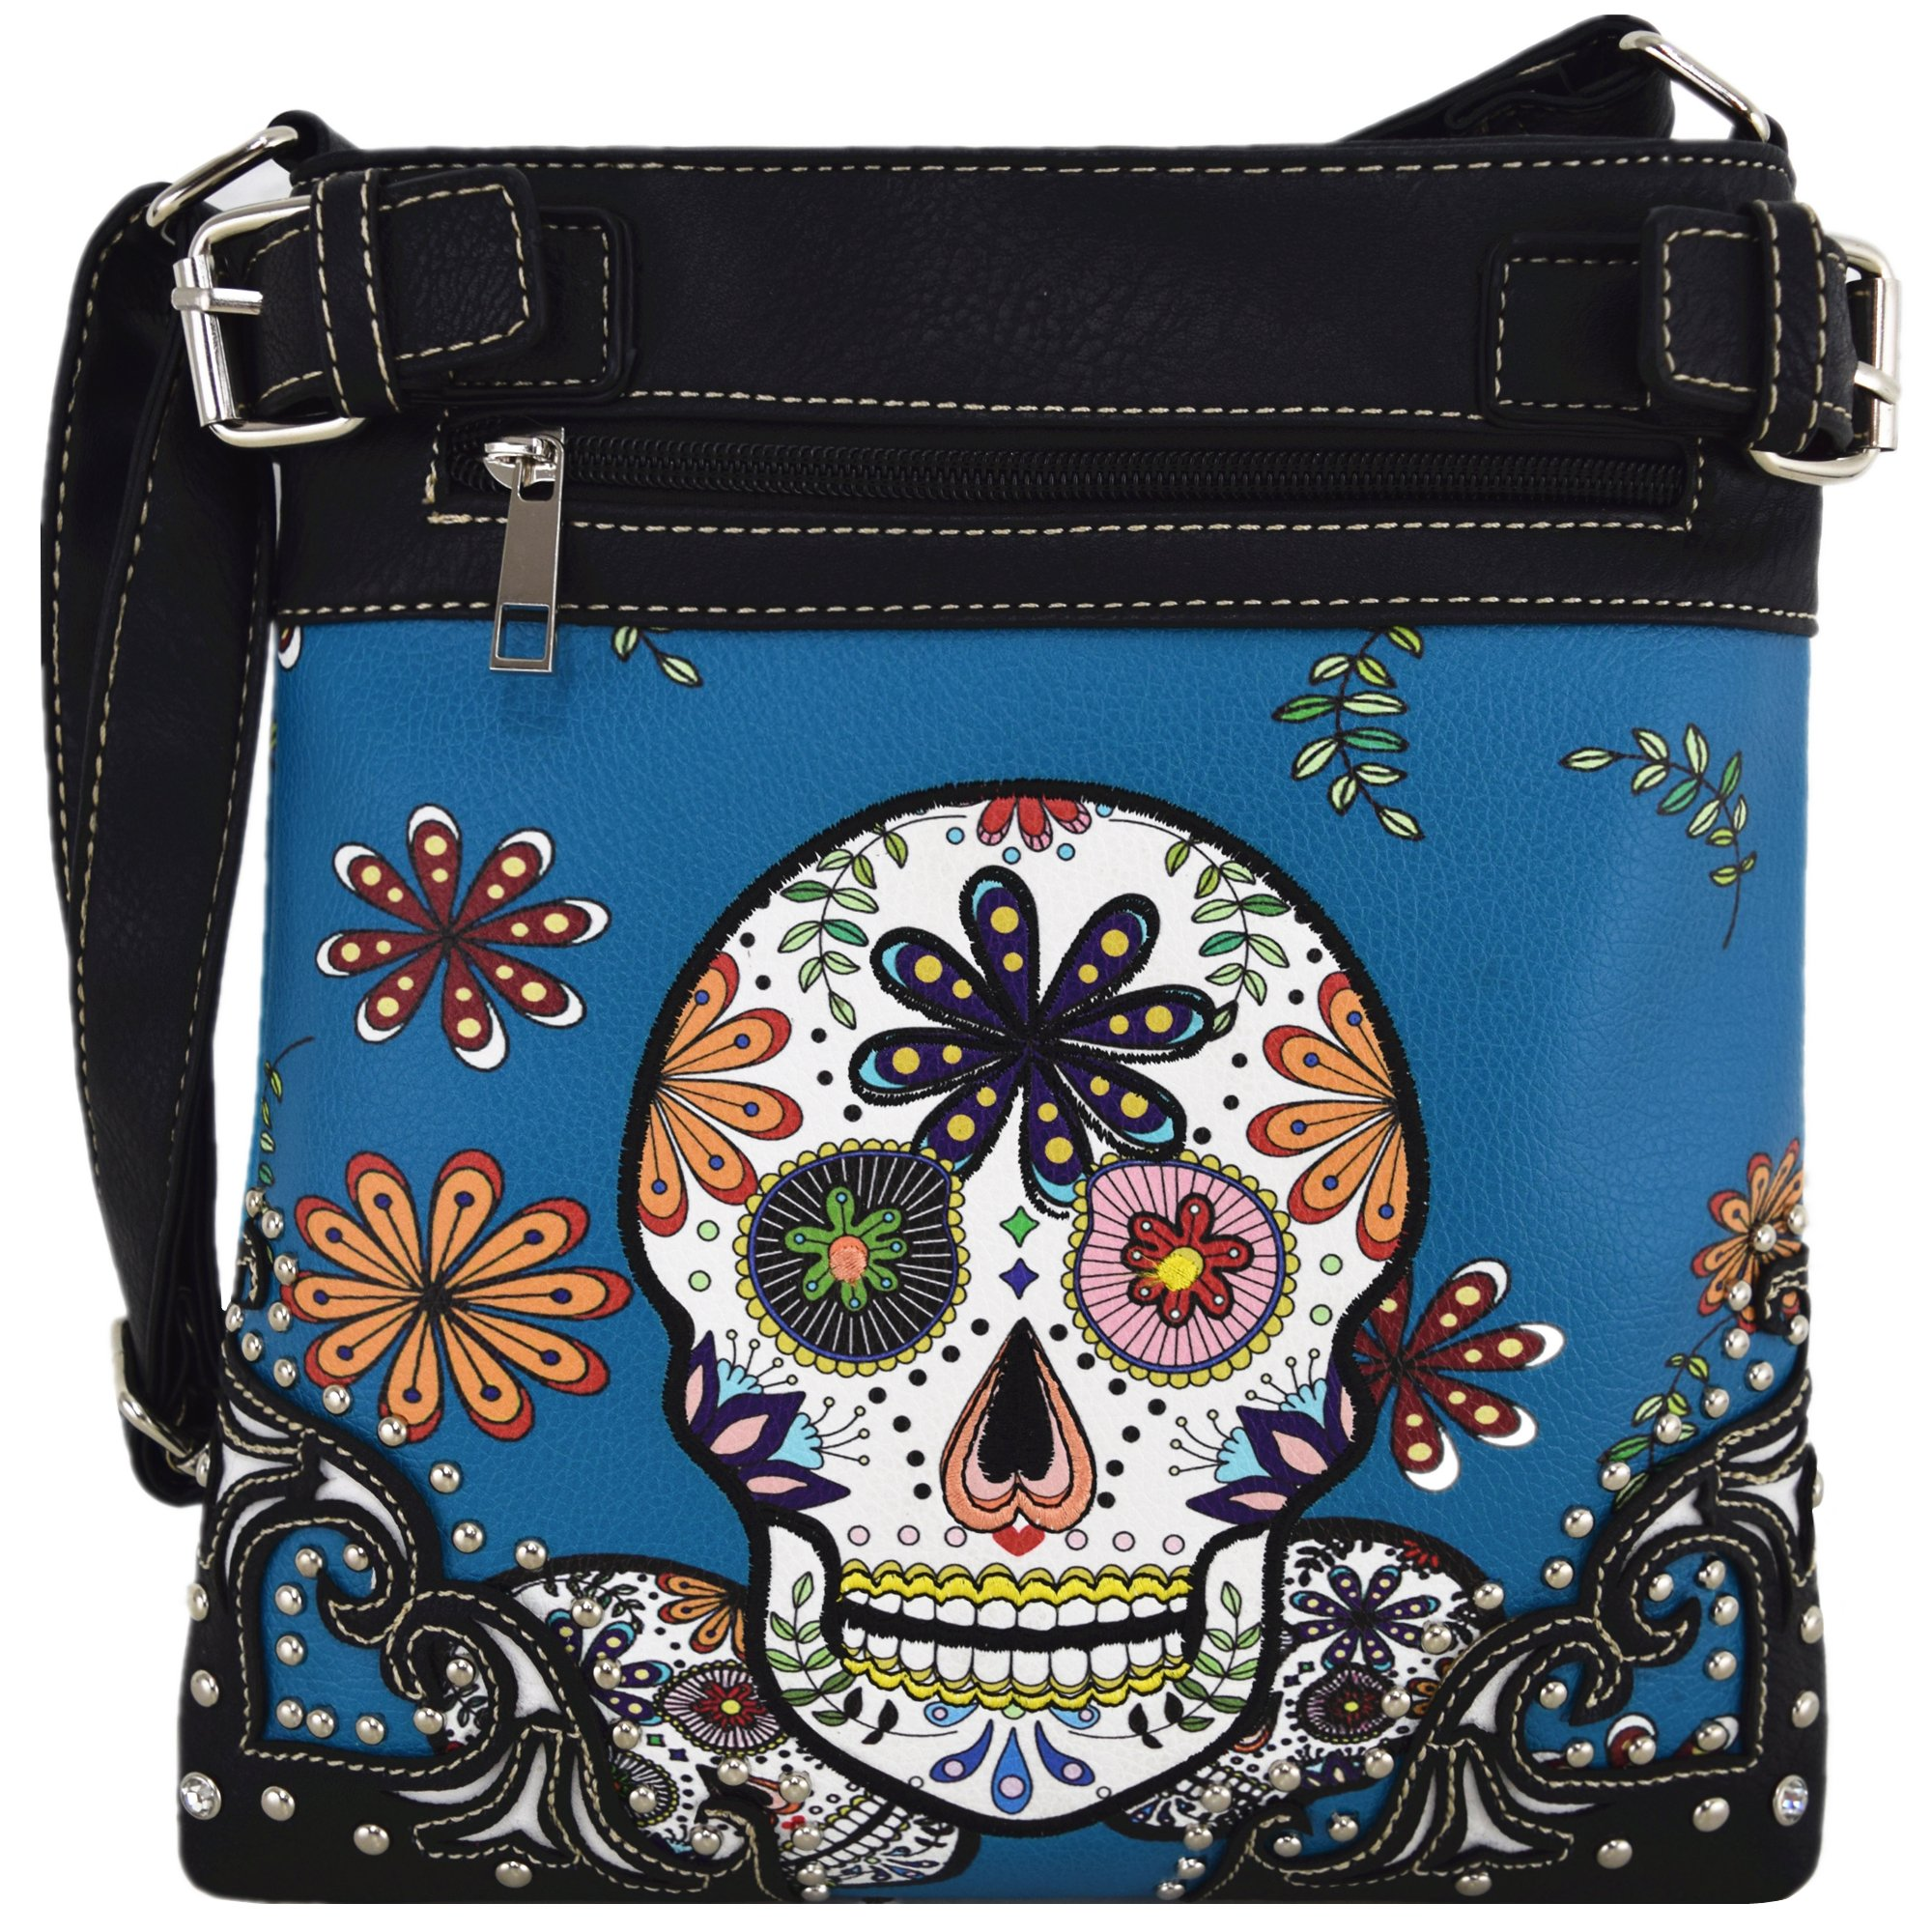 Sugar Skull Day of the Dead Cross Body Handbags Concealed Carry Purses Country Women Single Shoulder Bags (Blue)